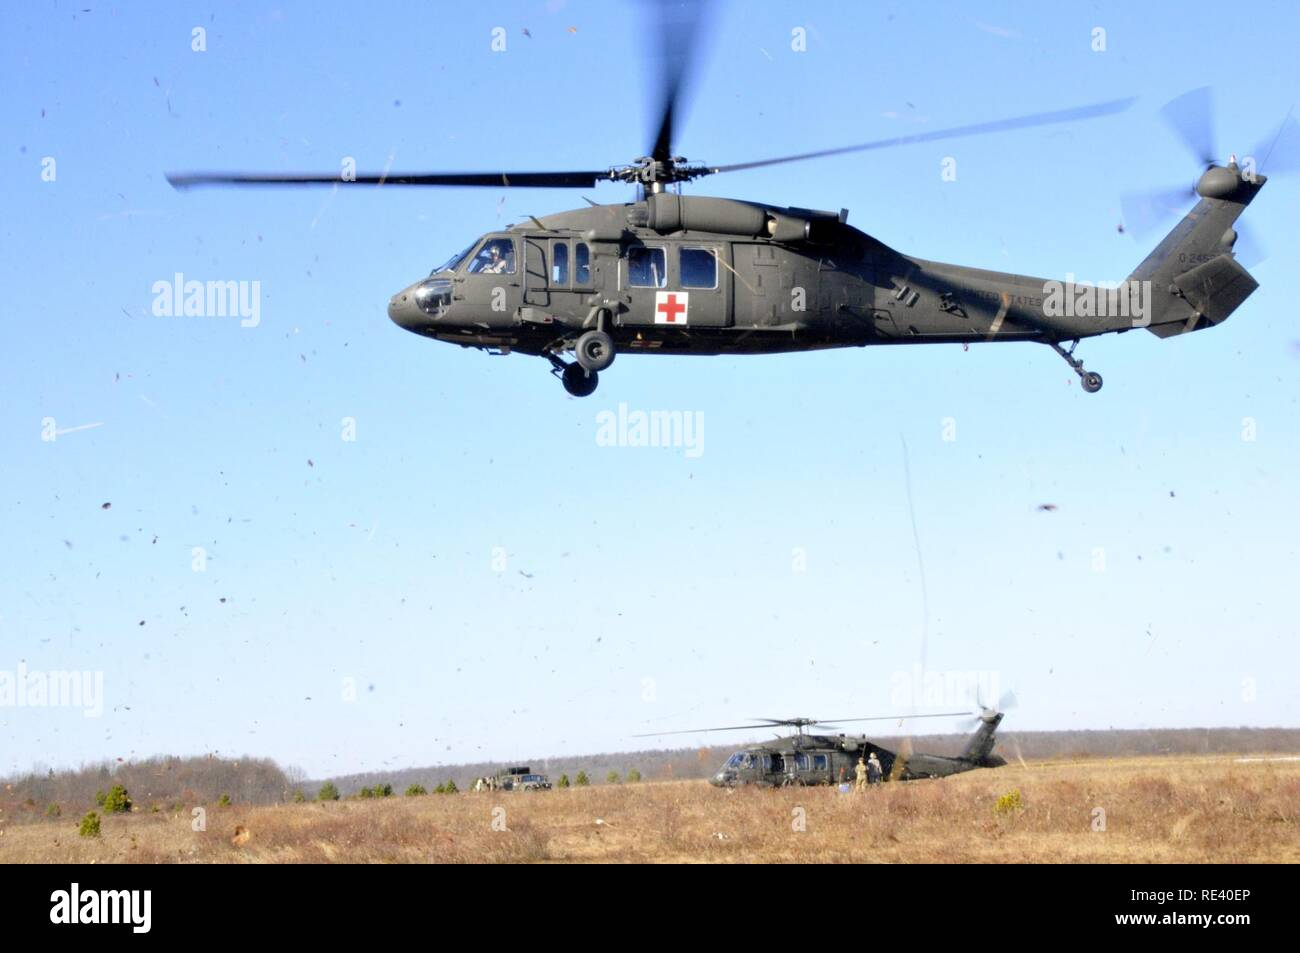 69394838df A UH-60 Black Hawk helicopter assigned to Charlie Company